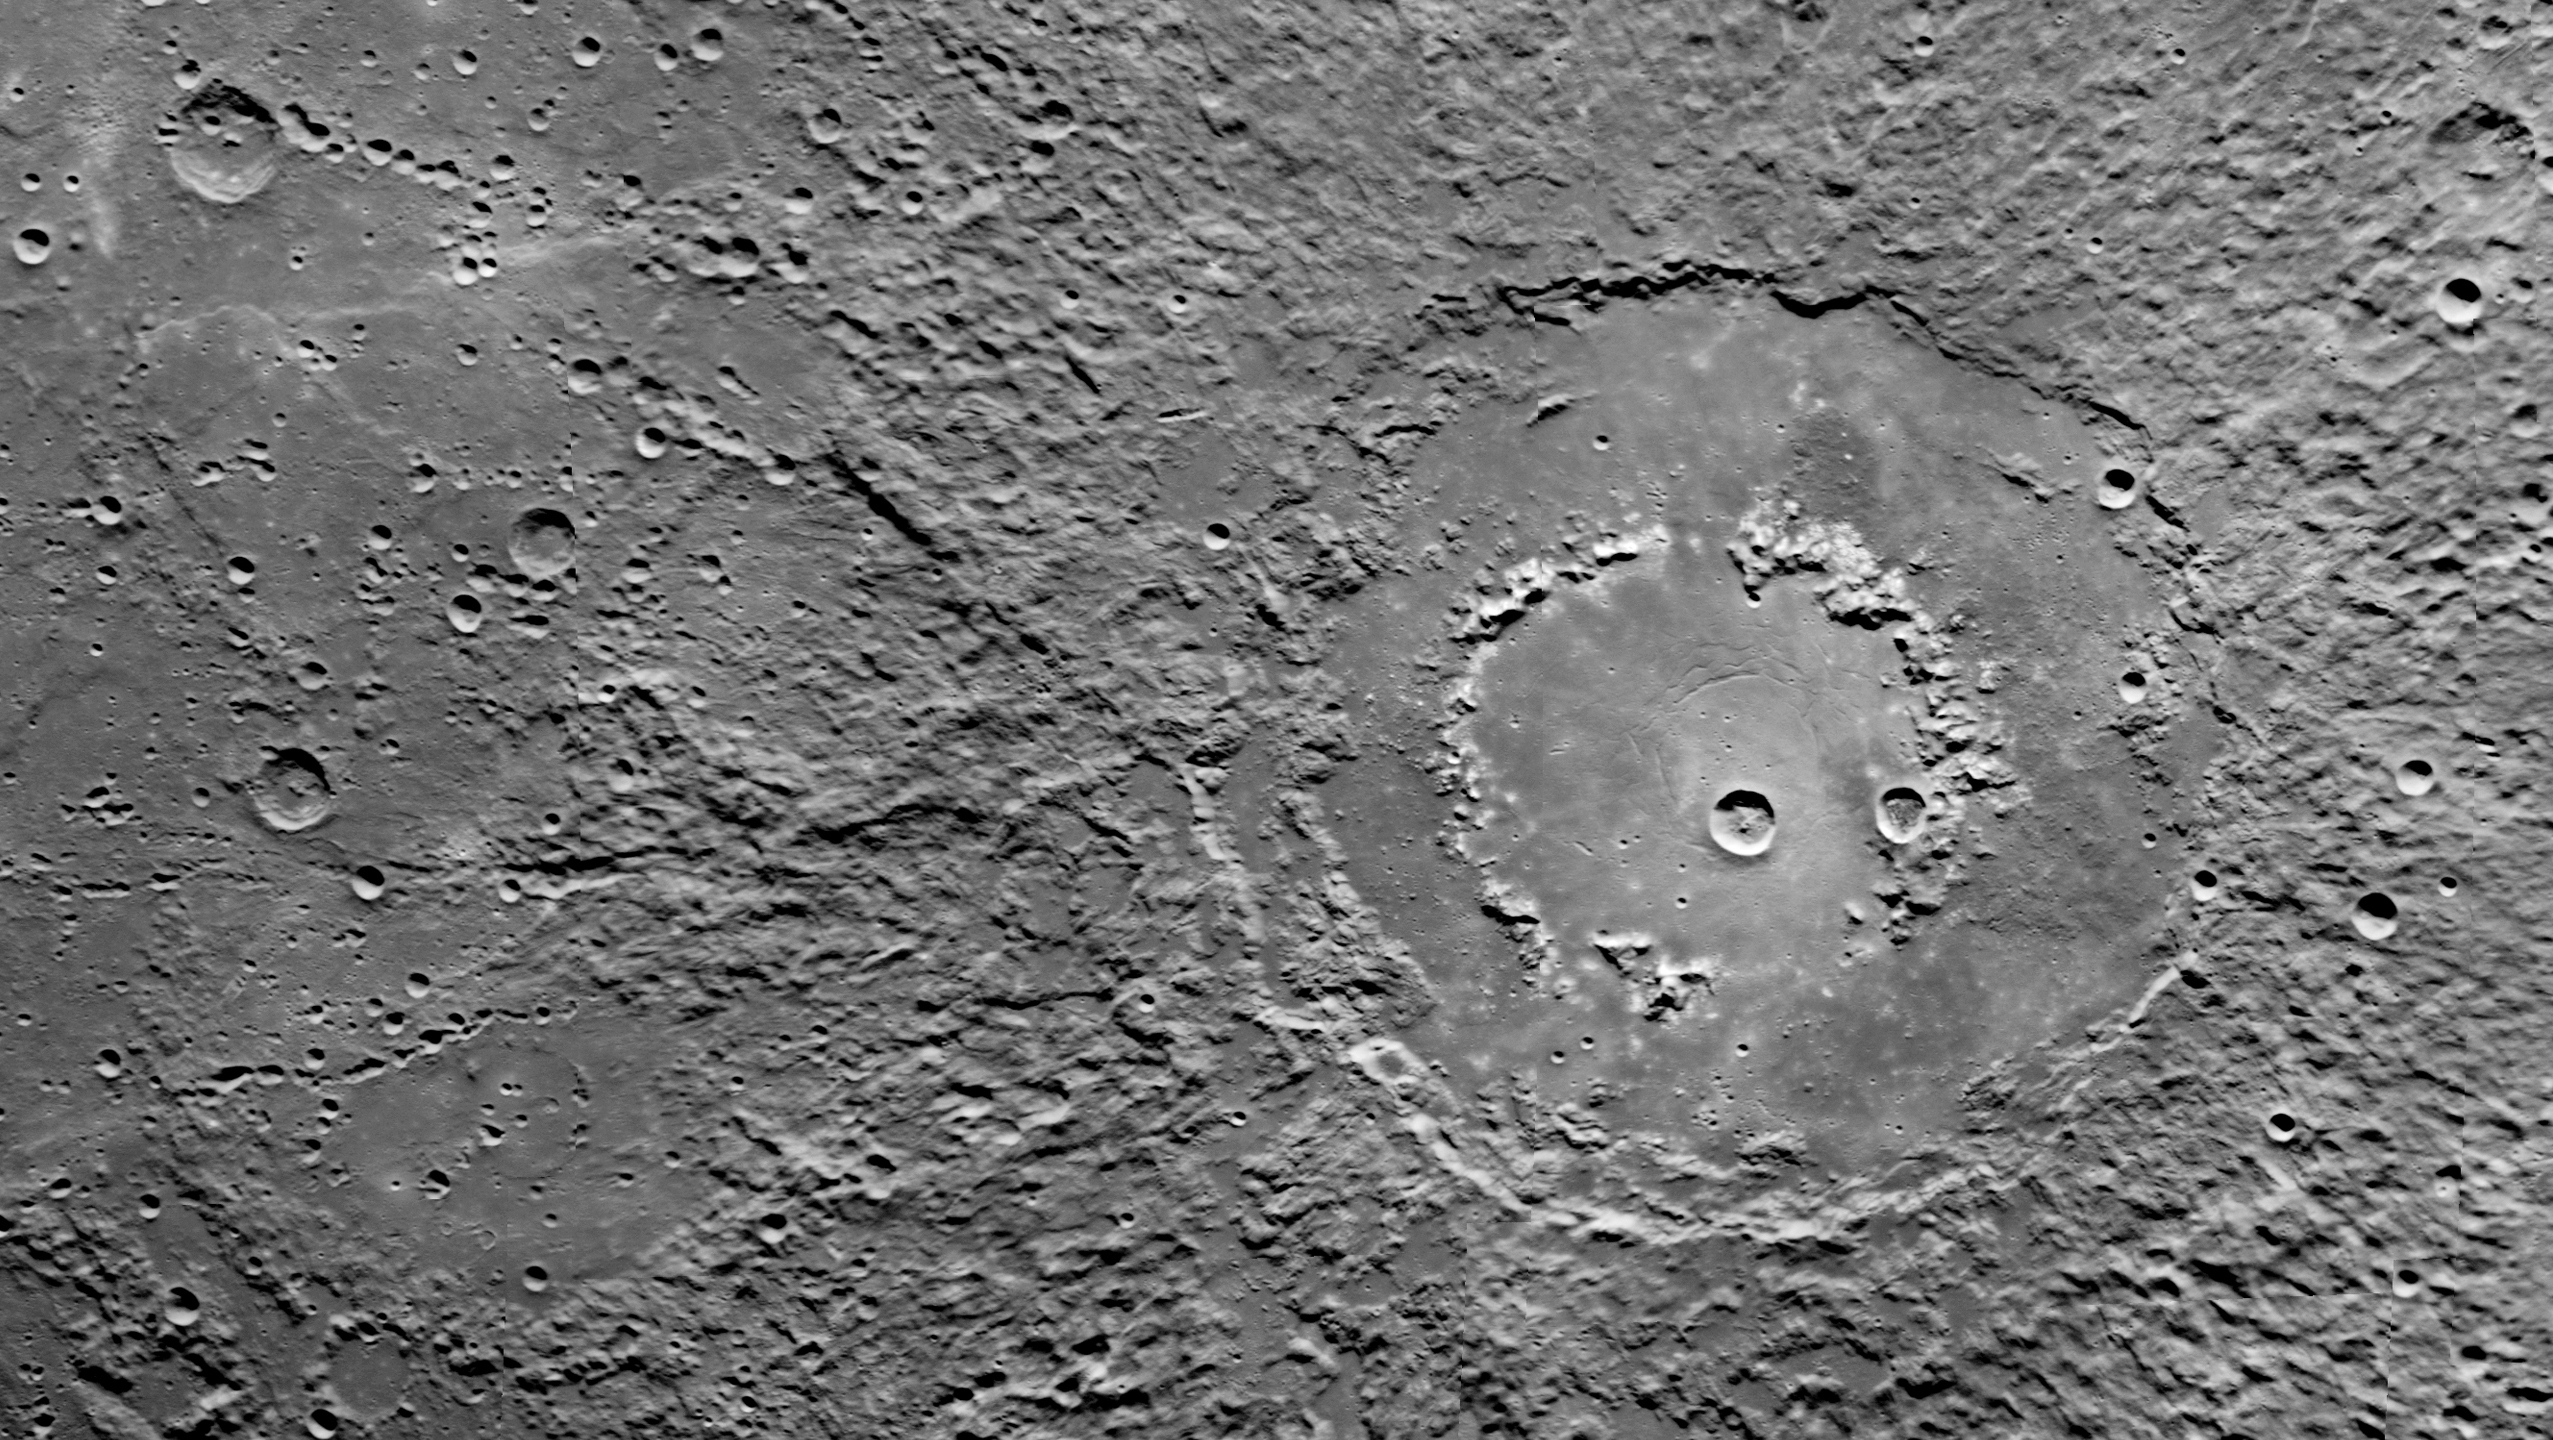 Background: MESSENGER Mercury